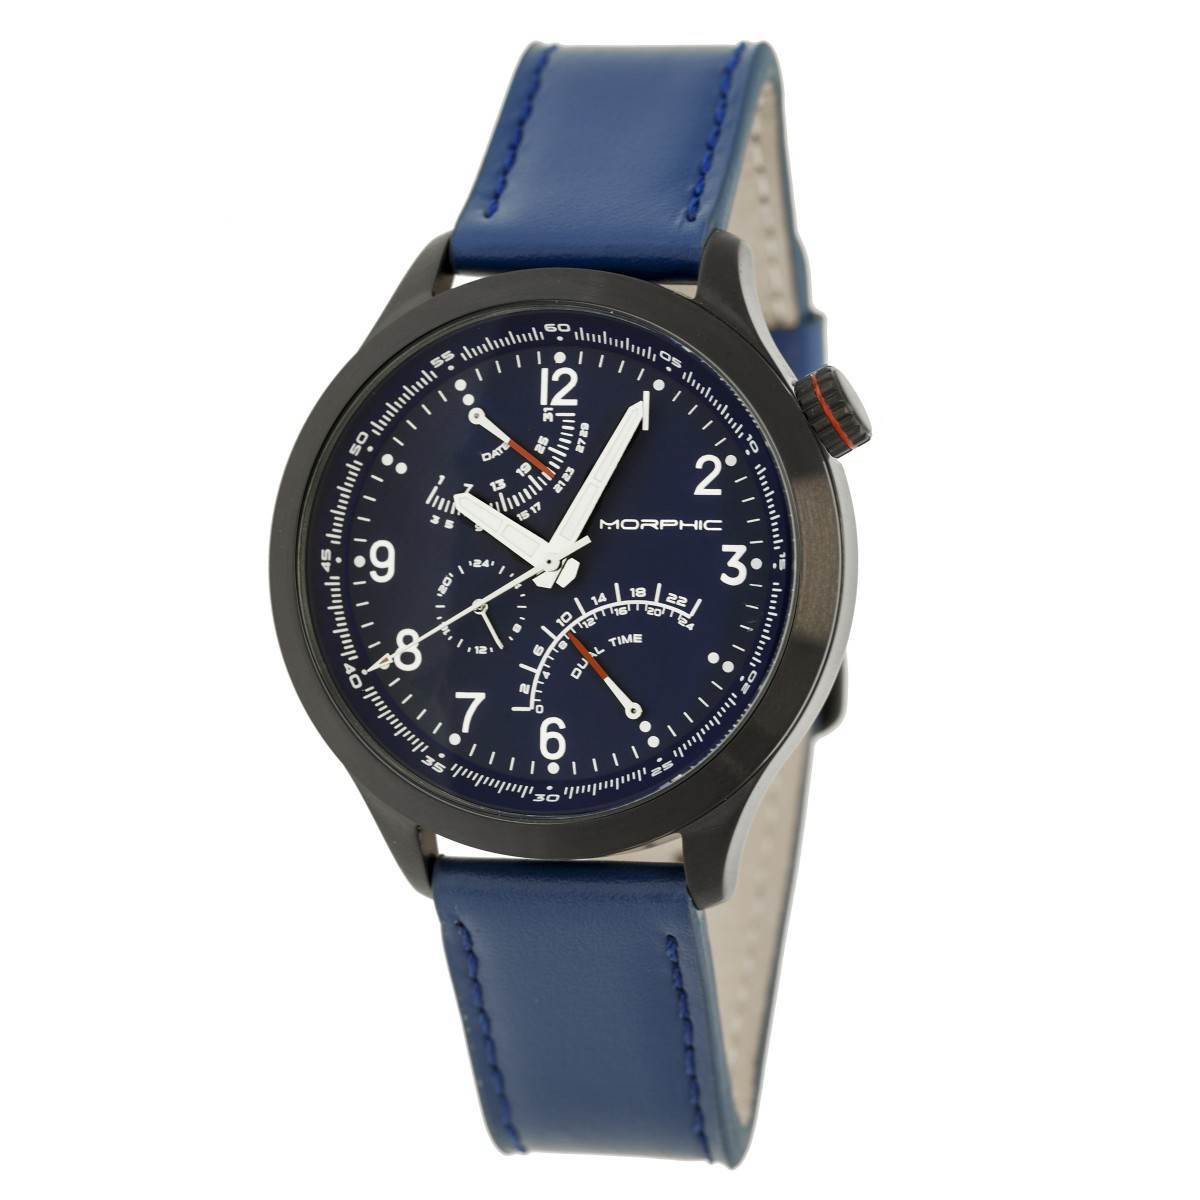 Morphic M44 Series Dual-Time Leather-Band Watch w/ Retrograde Date - Black/Blue MPH4405